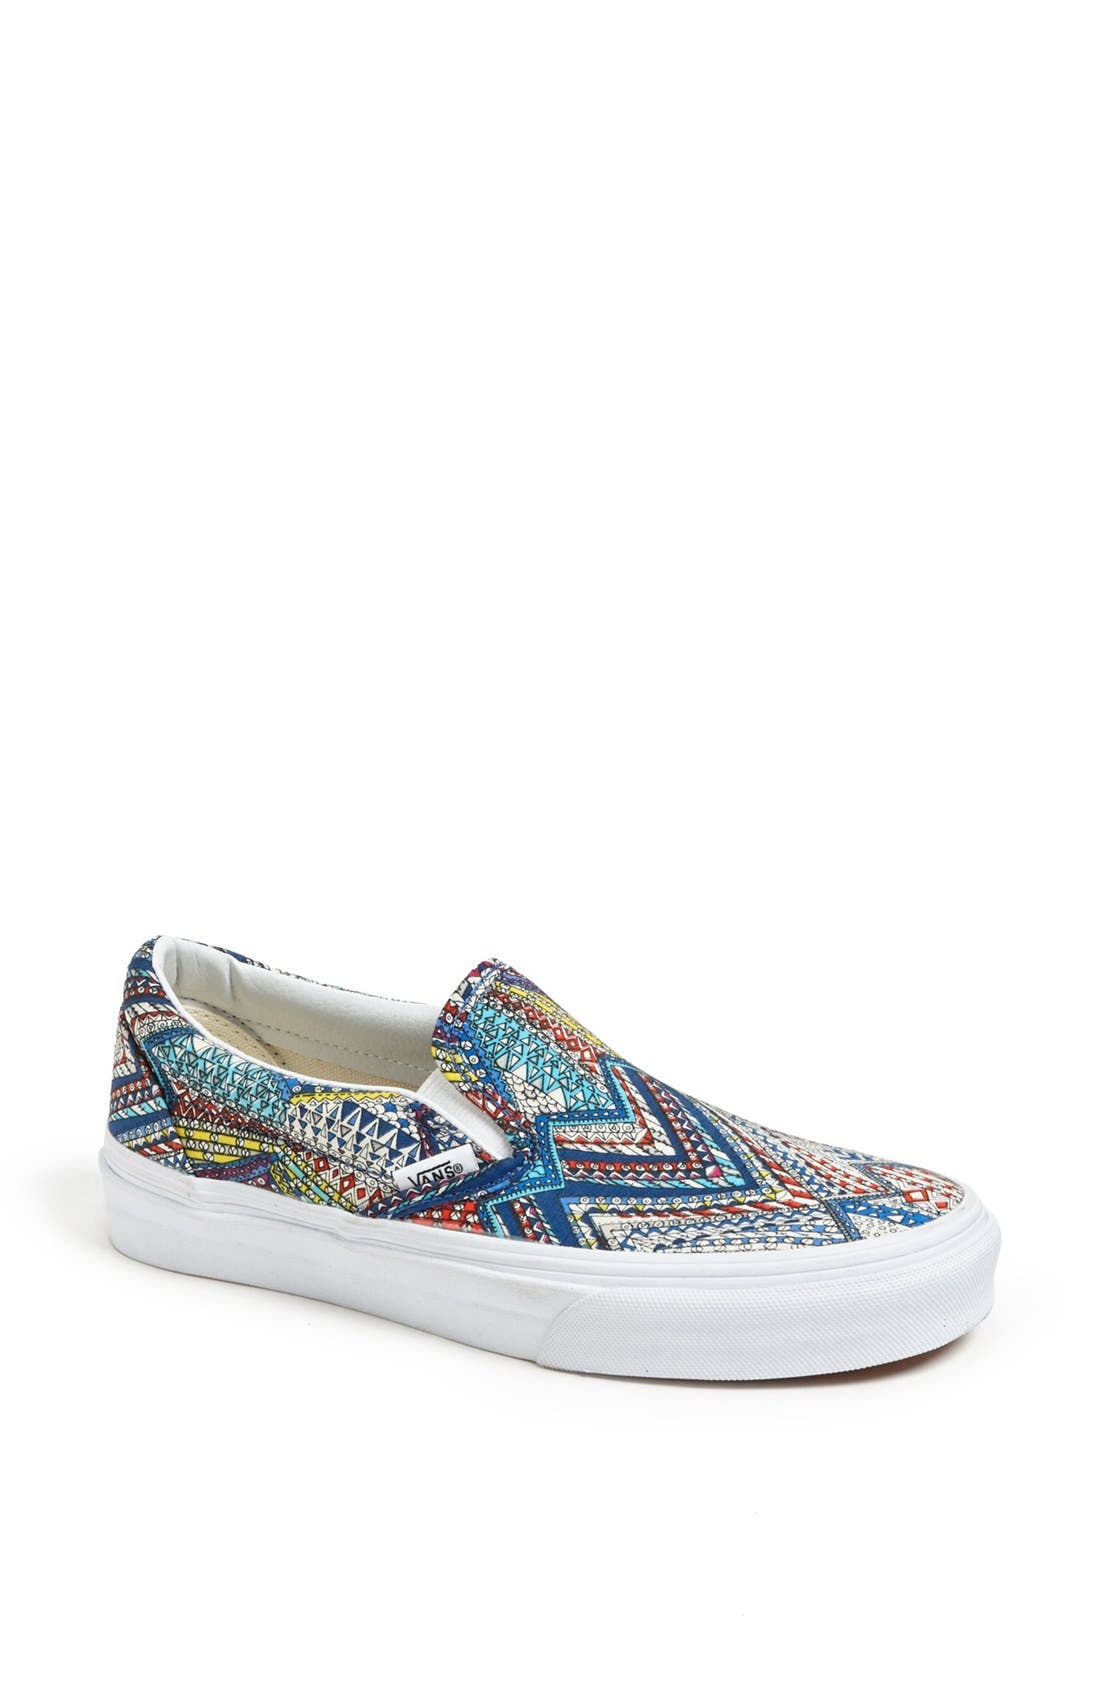 Main Image - Vans 'Classic - Abstract' Sneaker (Women)